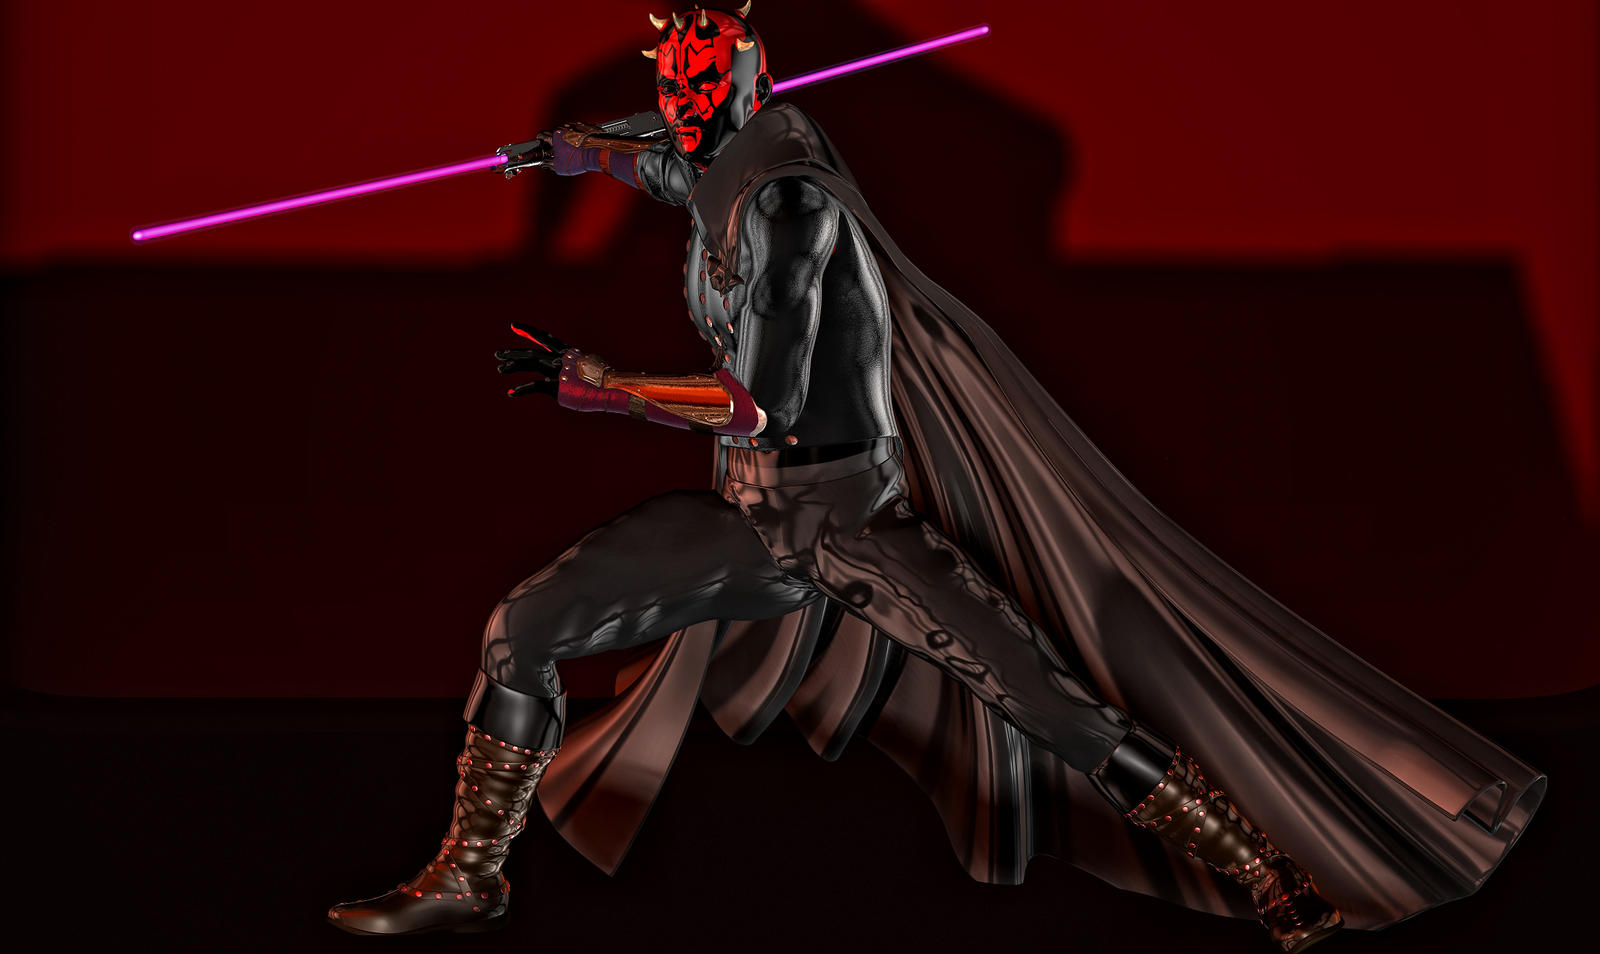 Darth Maul by hiram67